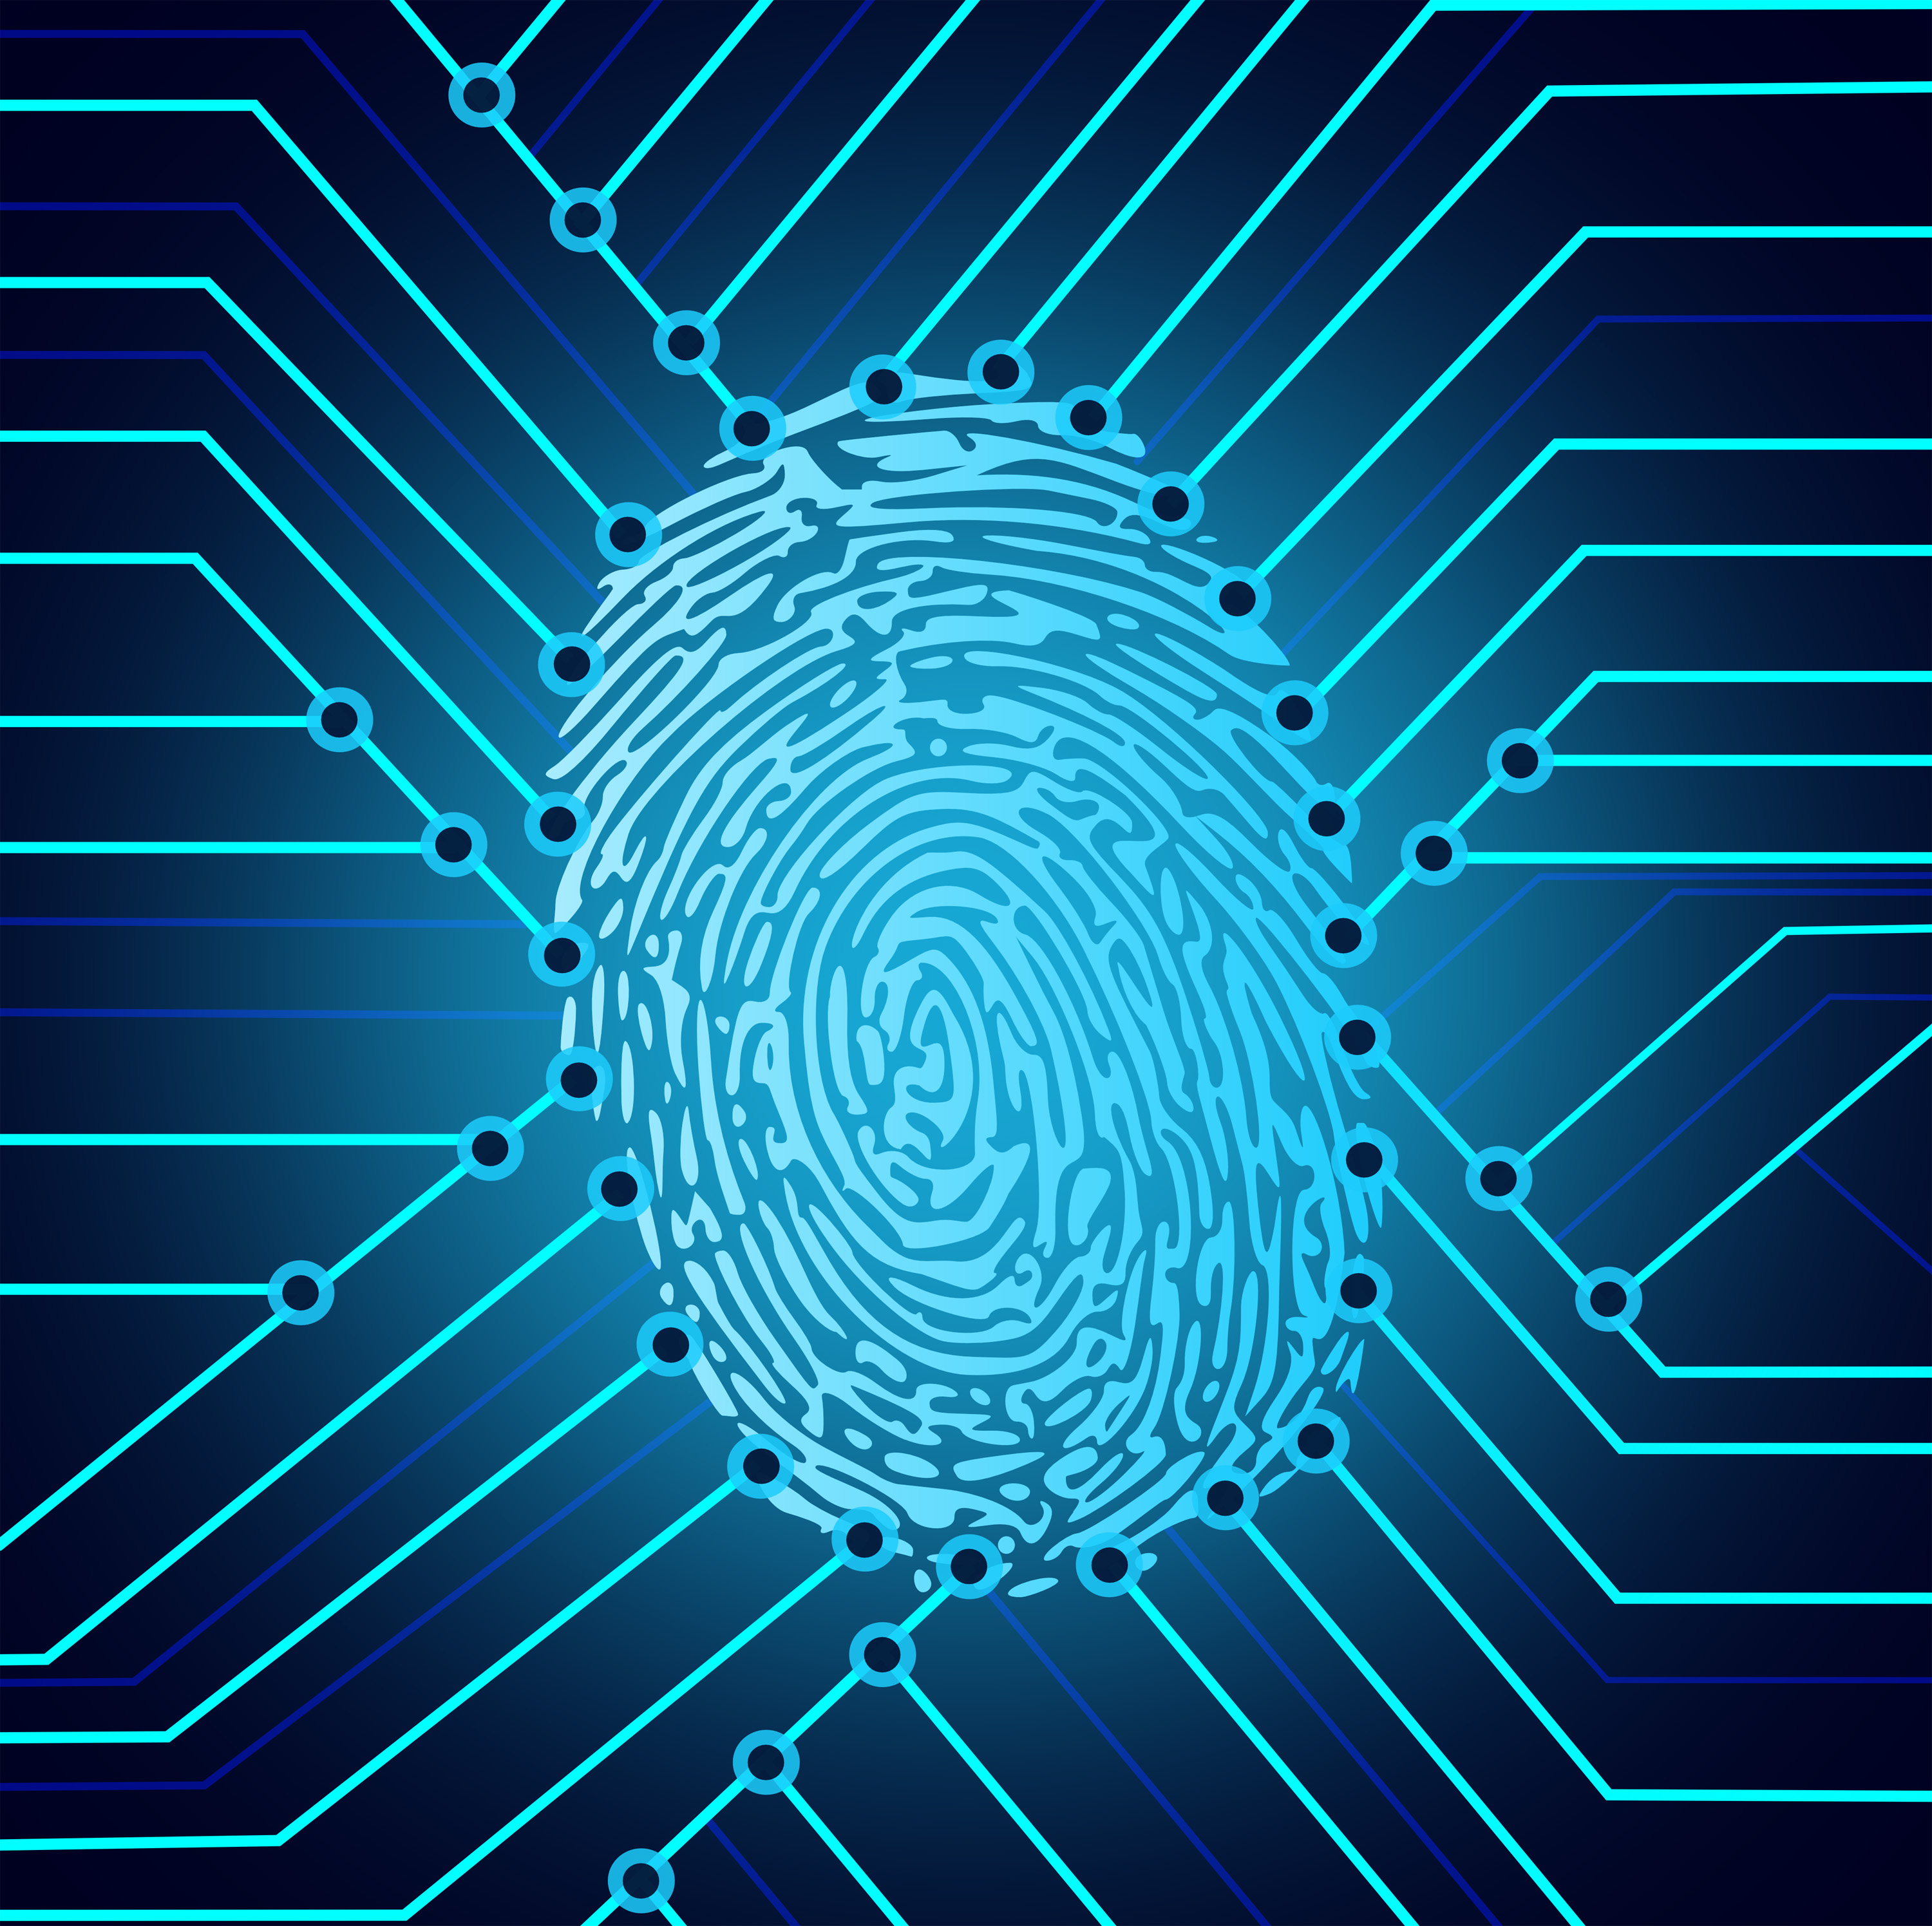 Biometric fingerprint identification, Abstract, Privacy, Scan, Safety, HQ Photo